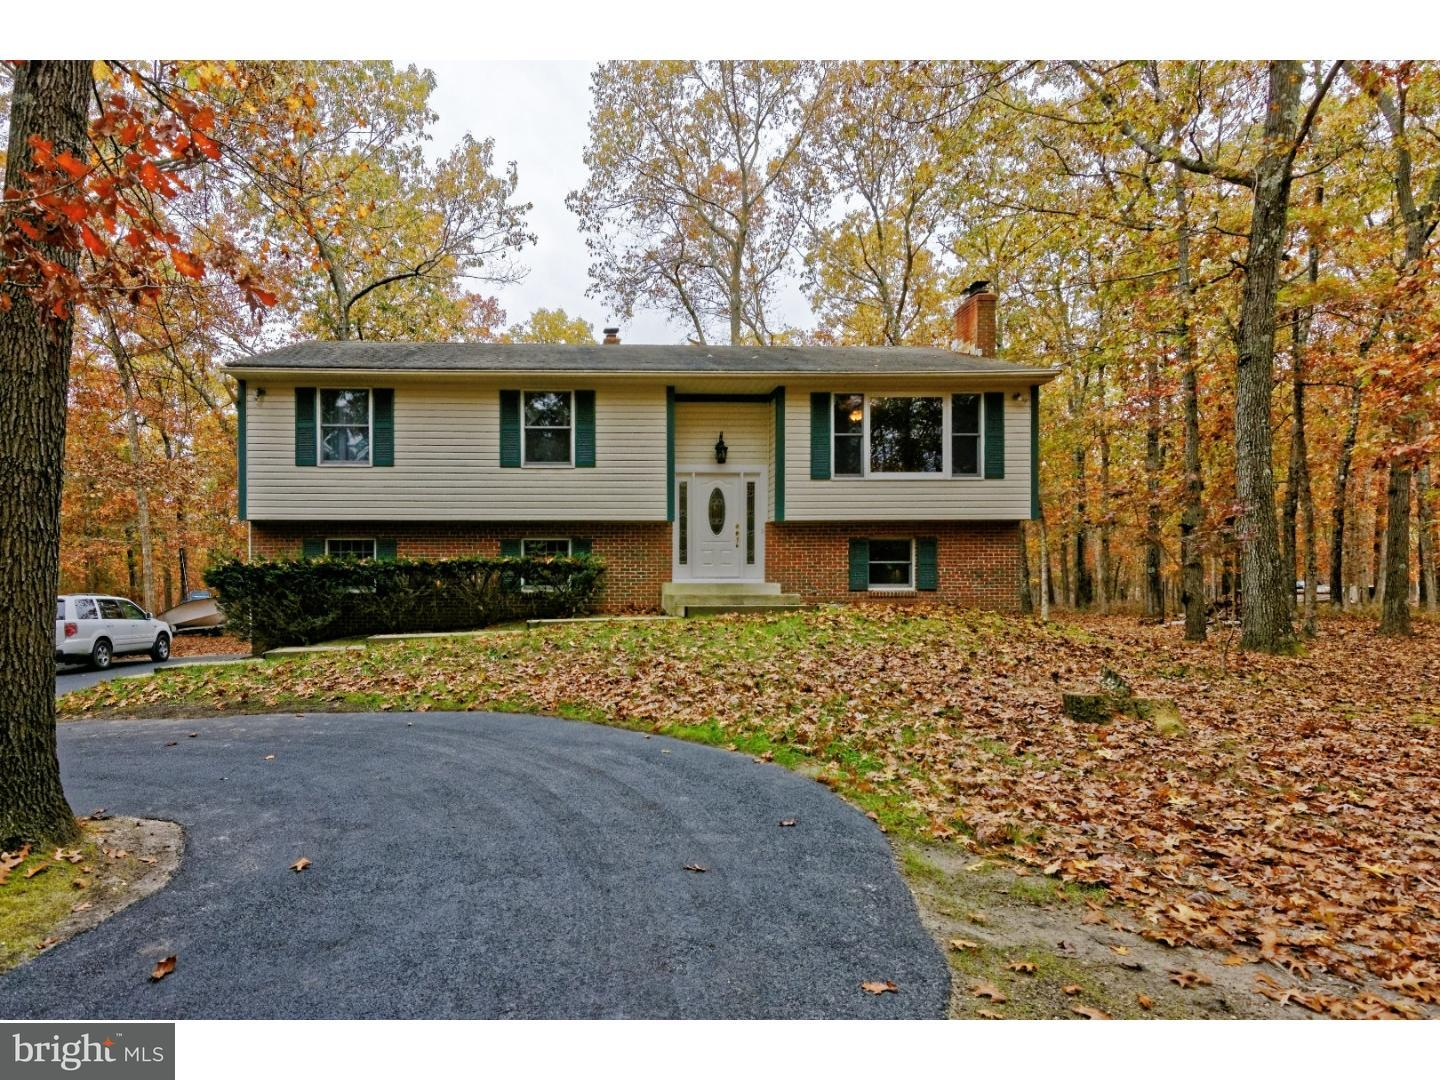 Chatsworth Real Estate   Find Homes for Sale in Chatsworth, NJ ...